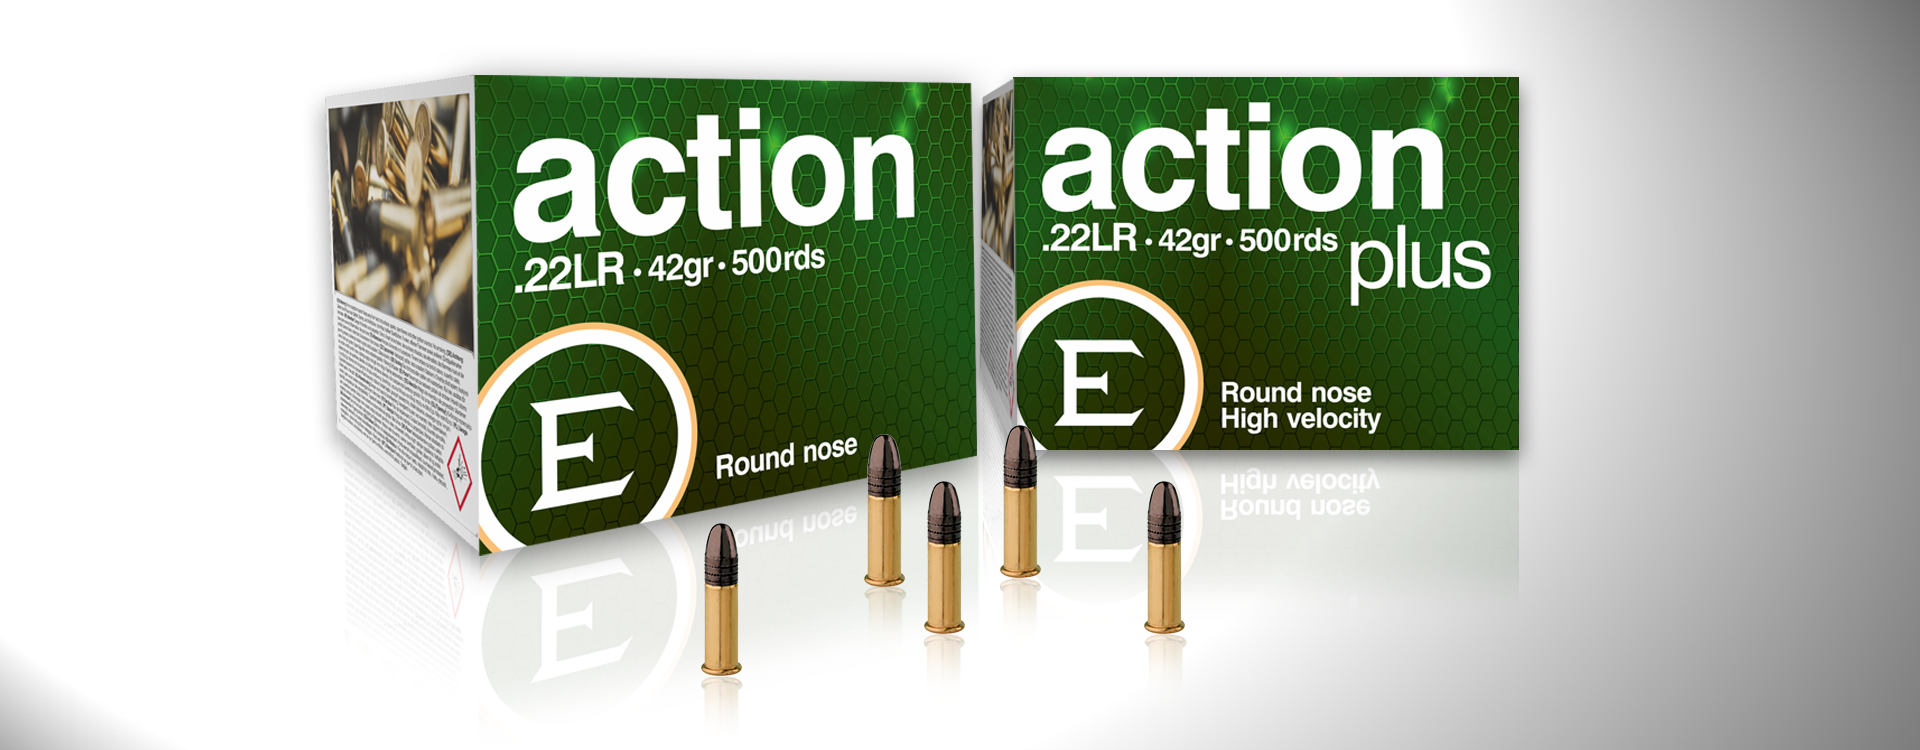 New action and action plus 42g rimfire ammunition by ELEY.